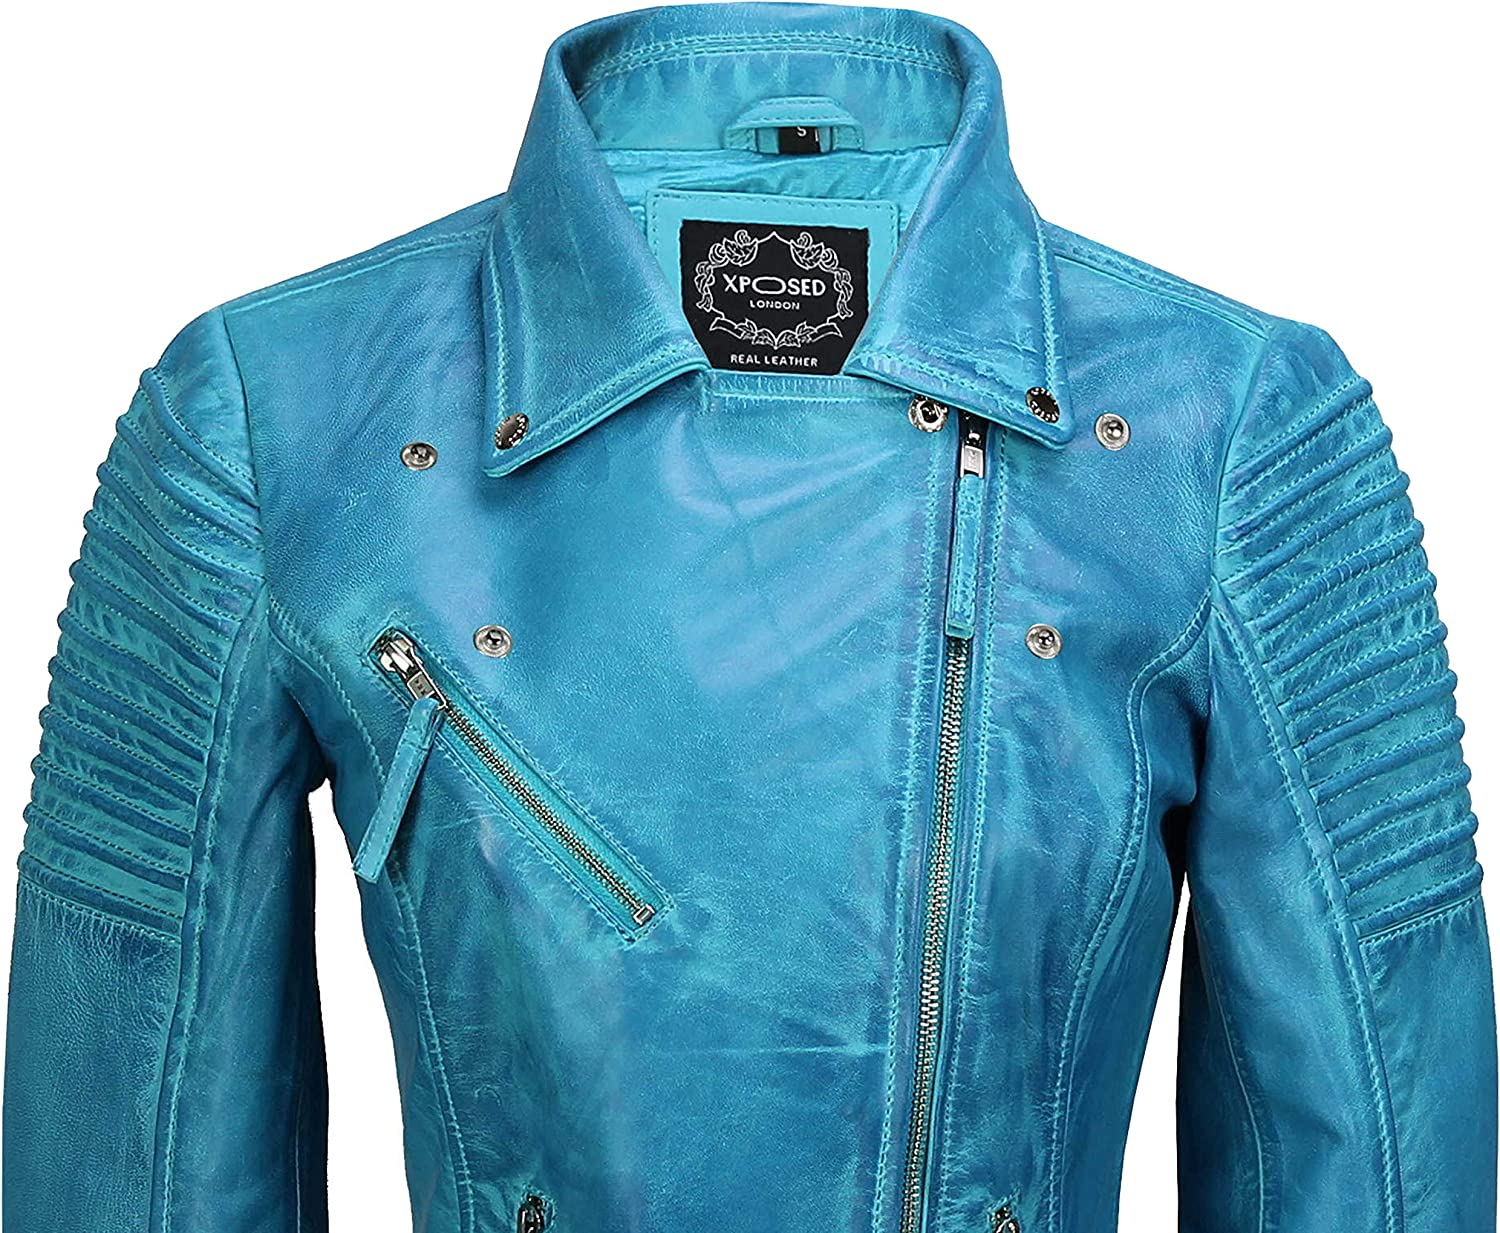 24 Xposed Womens Vintage Slim Fitted Soft Real Leather Ladies Biker Jacket UK Size 6